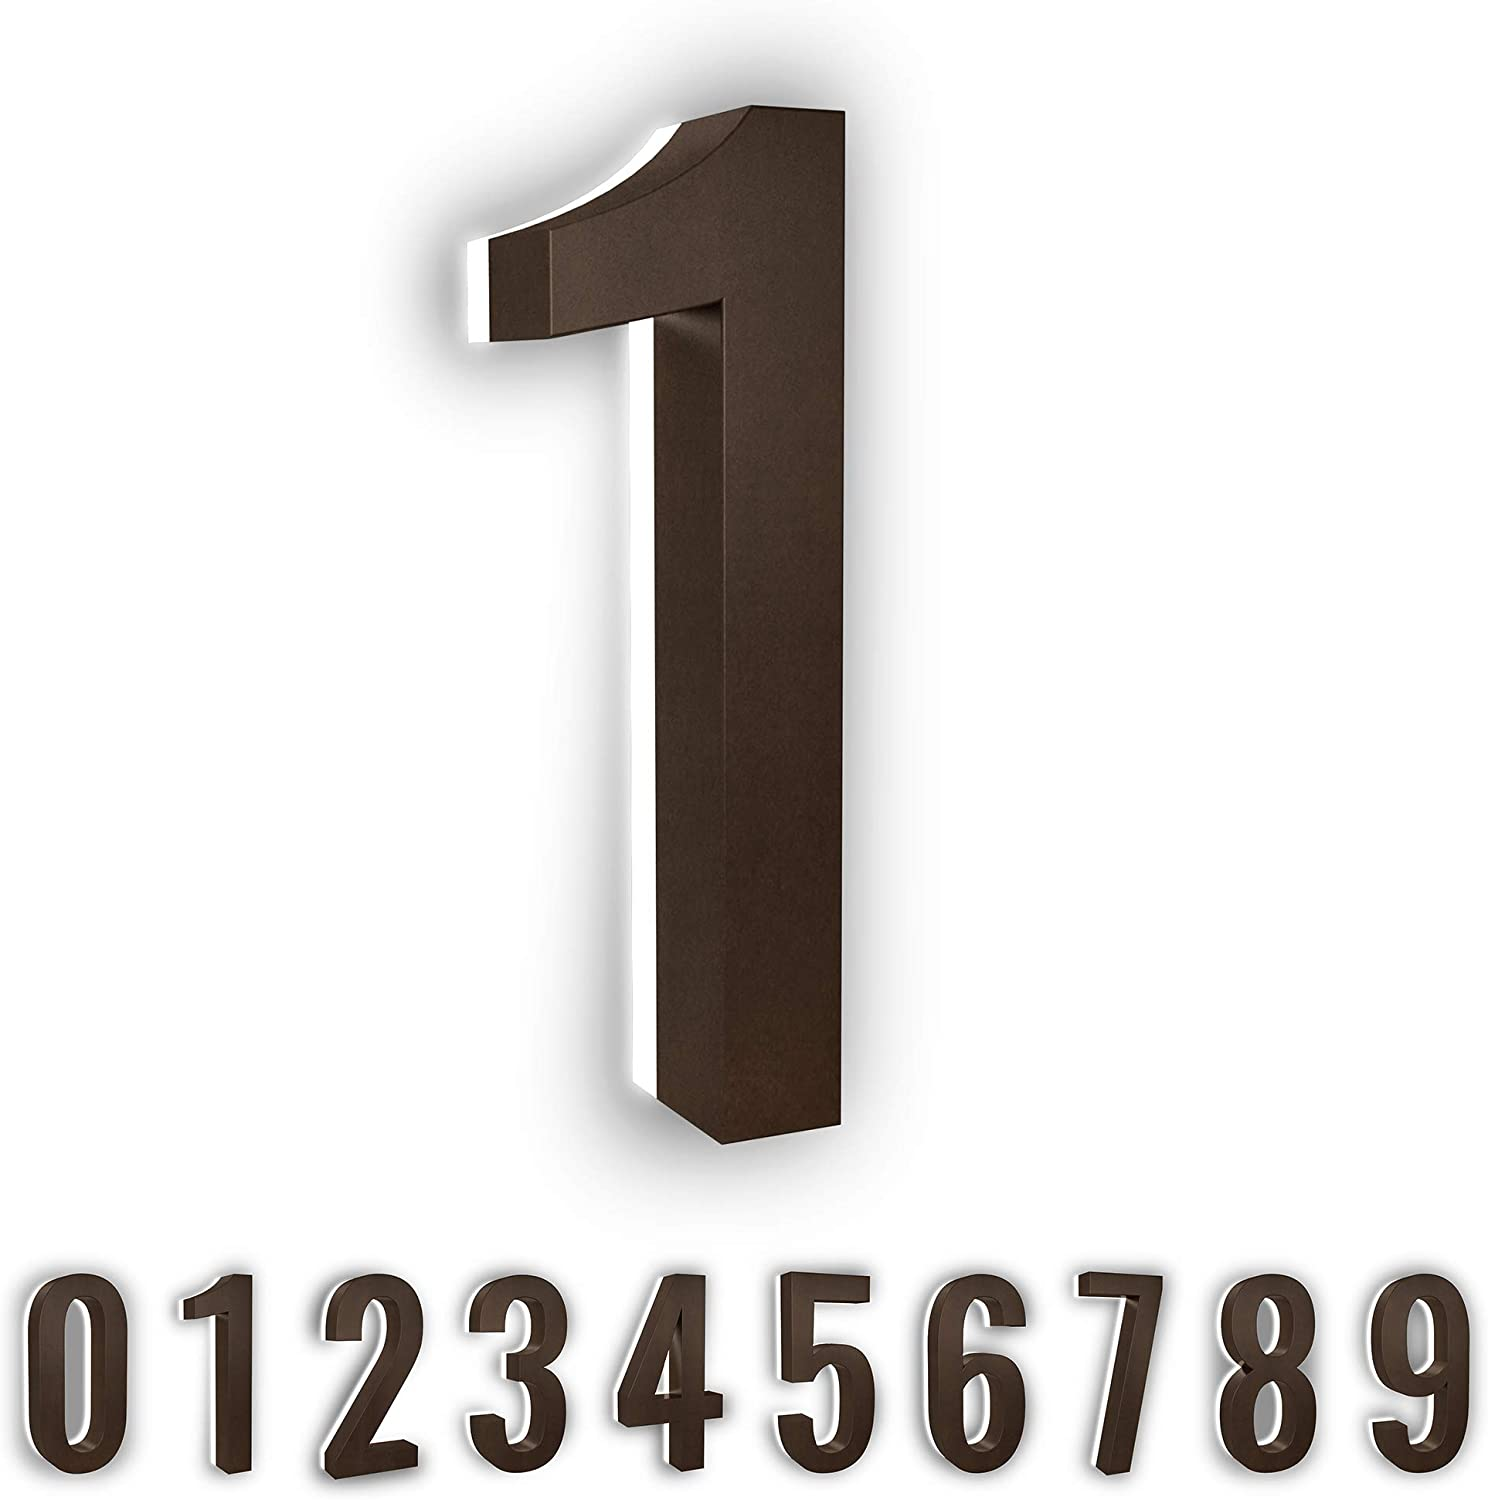 LN LUMANUMBERS Low-Voltage Backlit LED Address Numbers, Durable Painted Steel Lighted House Numbers, 5-inch, Weather-Proof, Modern Illuminated Floating Numbers (Bronze, 1)